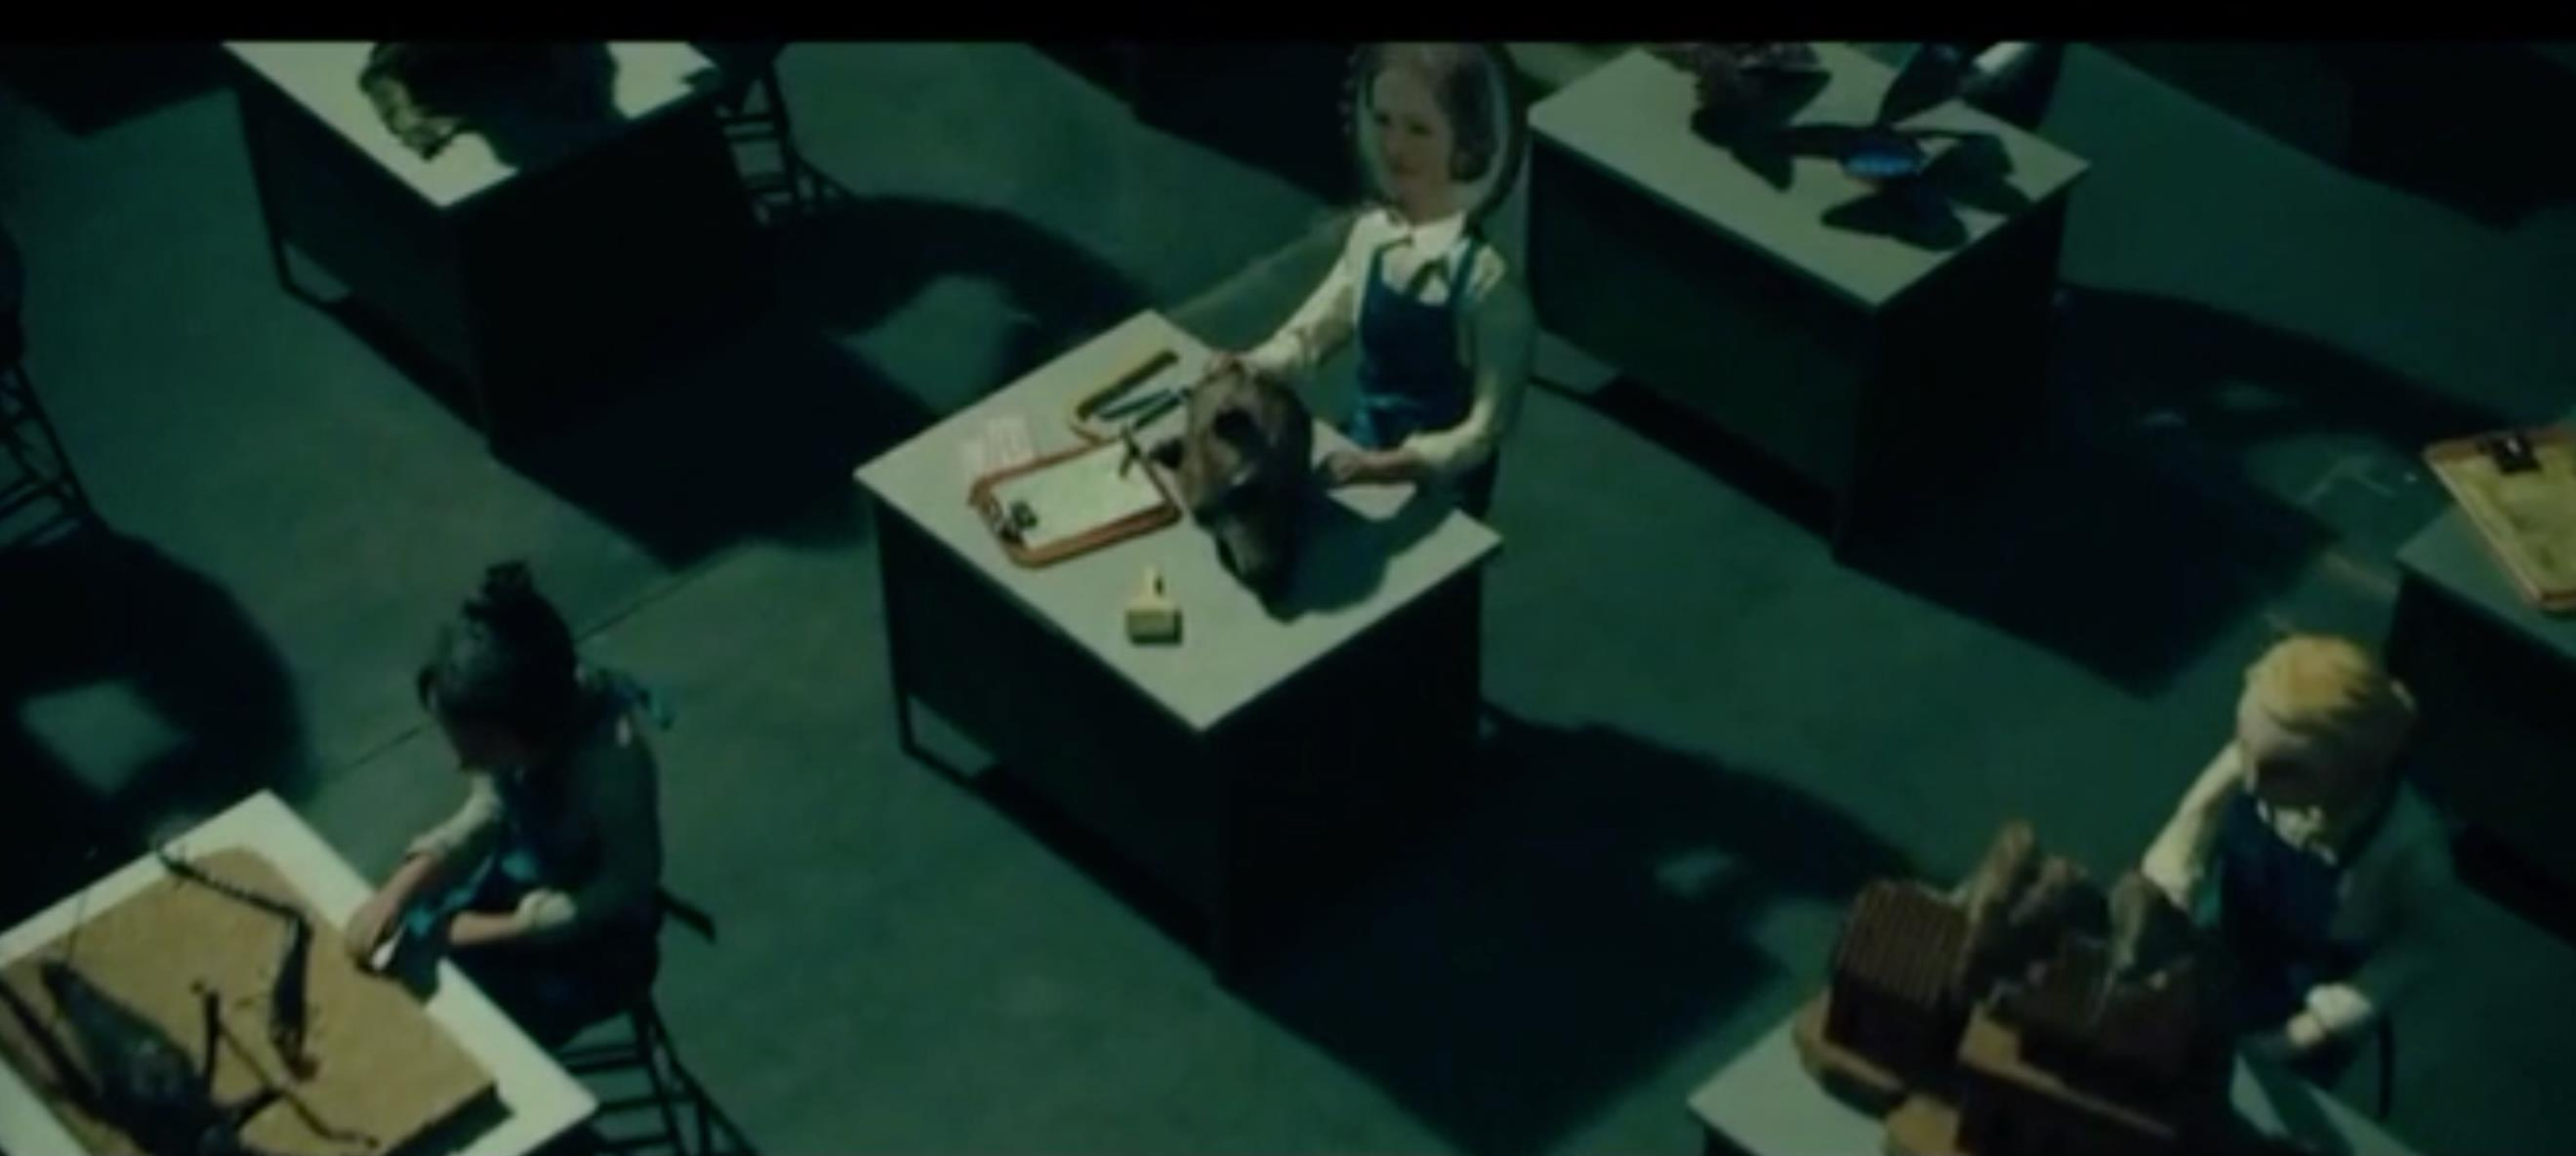 Figure #7: A puppet version of Rose in the diorama among an array of desks in Wonderstruck